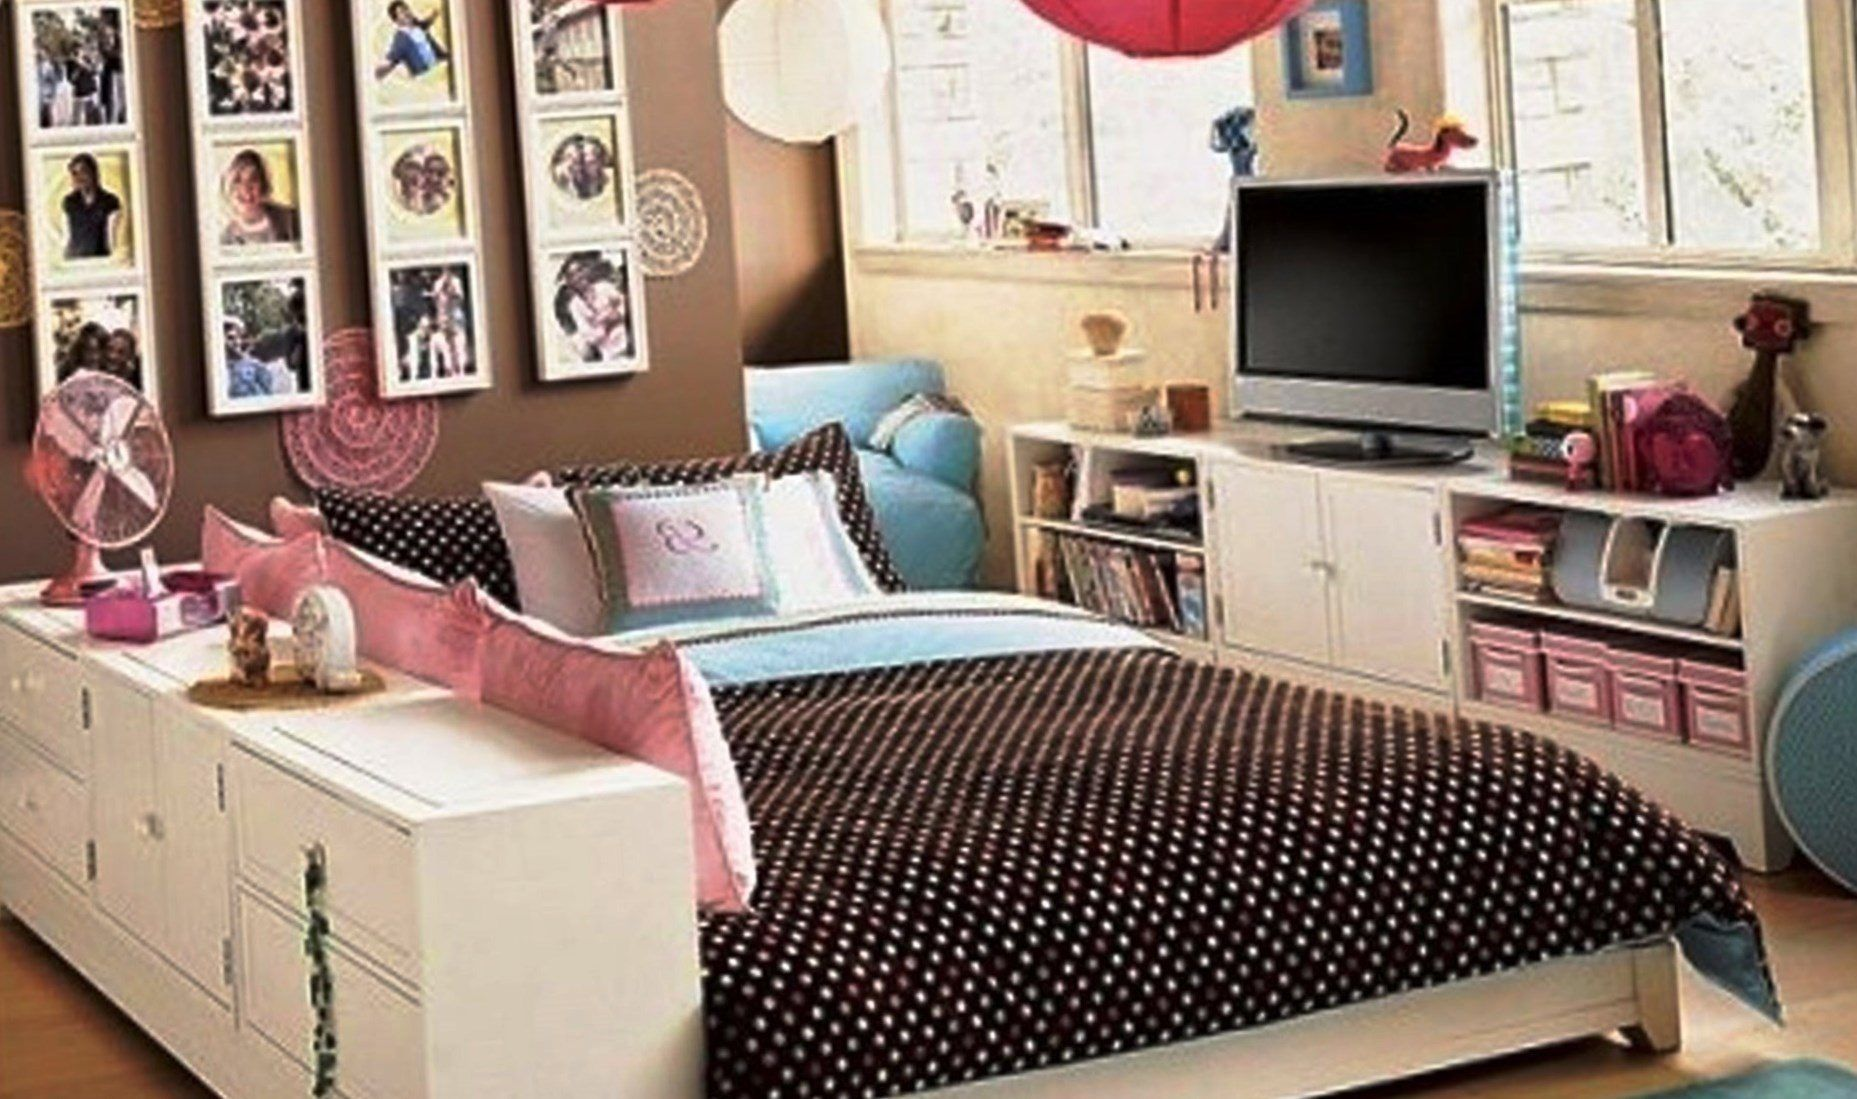 Genial Elegant Room Decor Diy Home Ideas For Bedroom Decorating Diy Bedroom  Decorating Room Decor Ideas Diy Do It Yourself Bedroom Furniture.